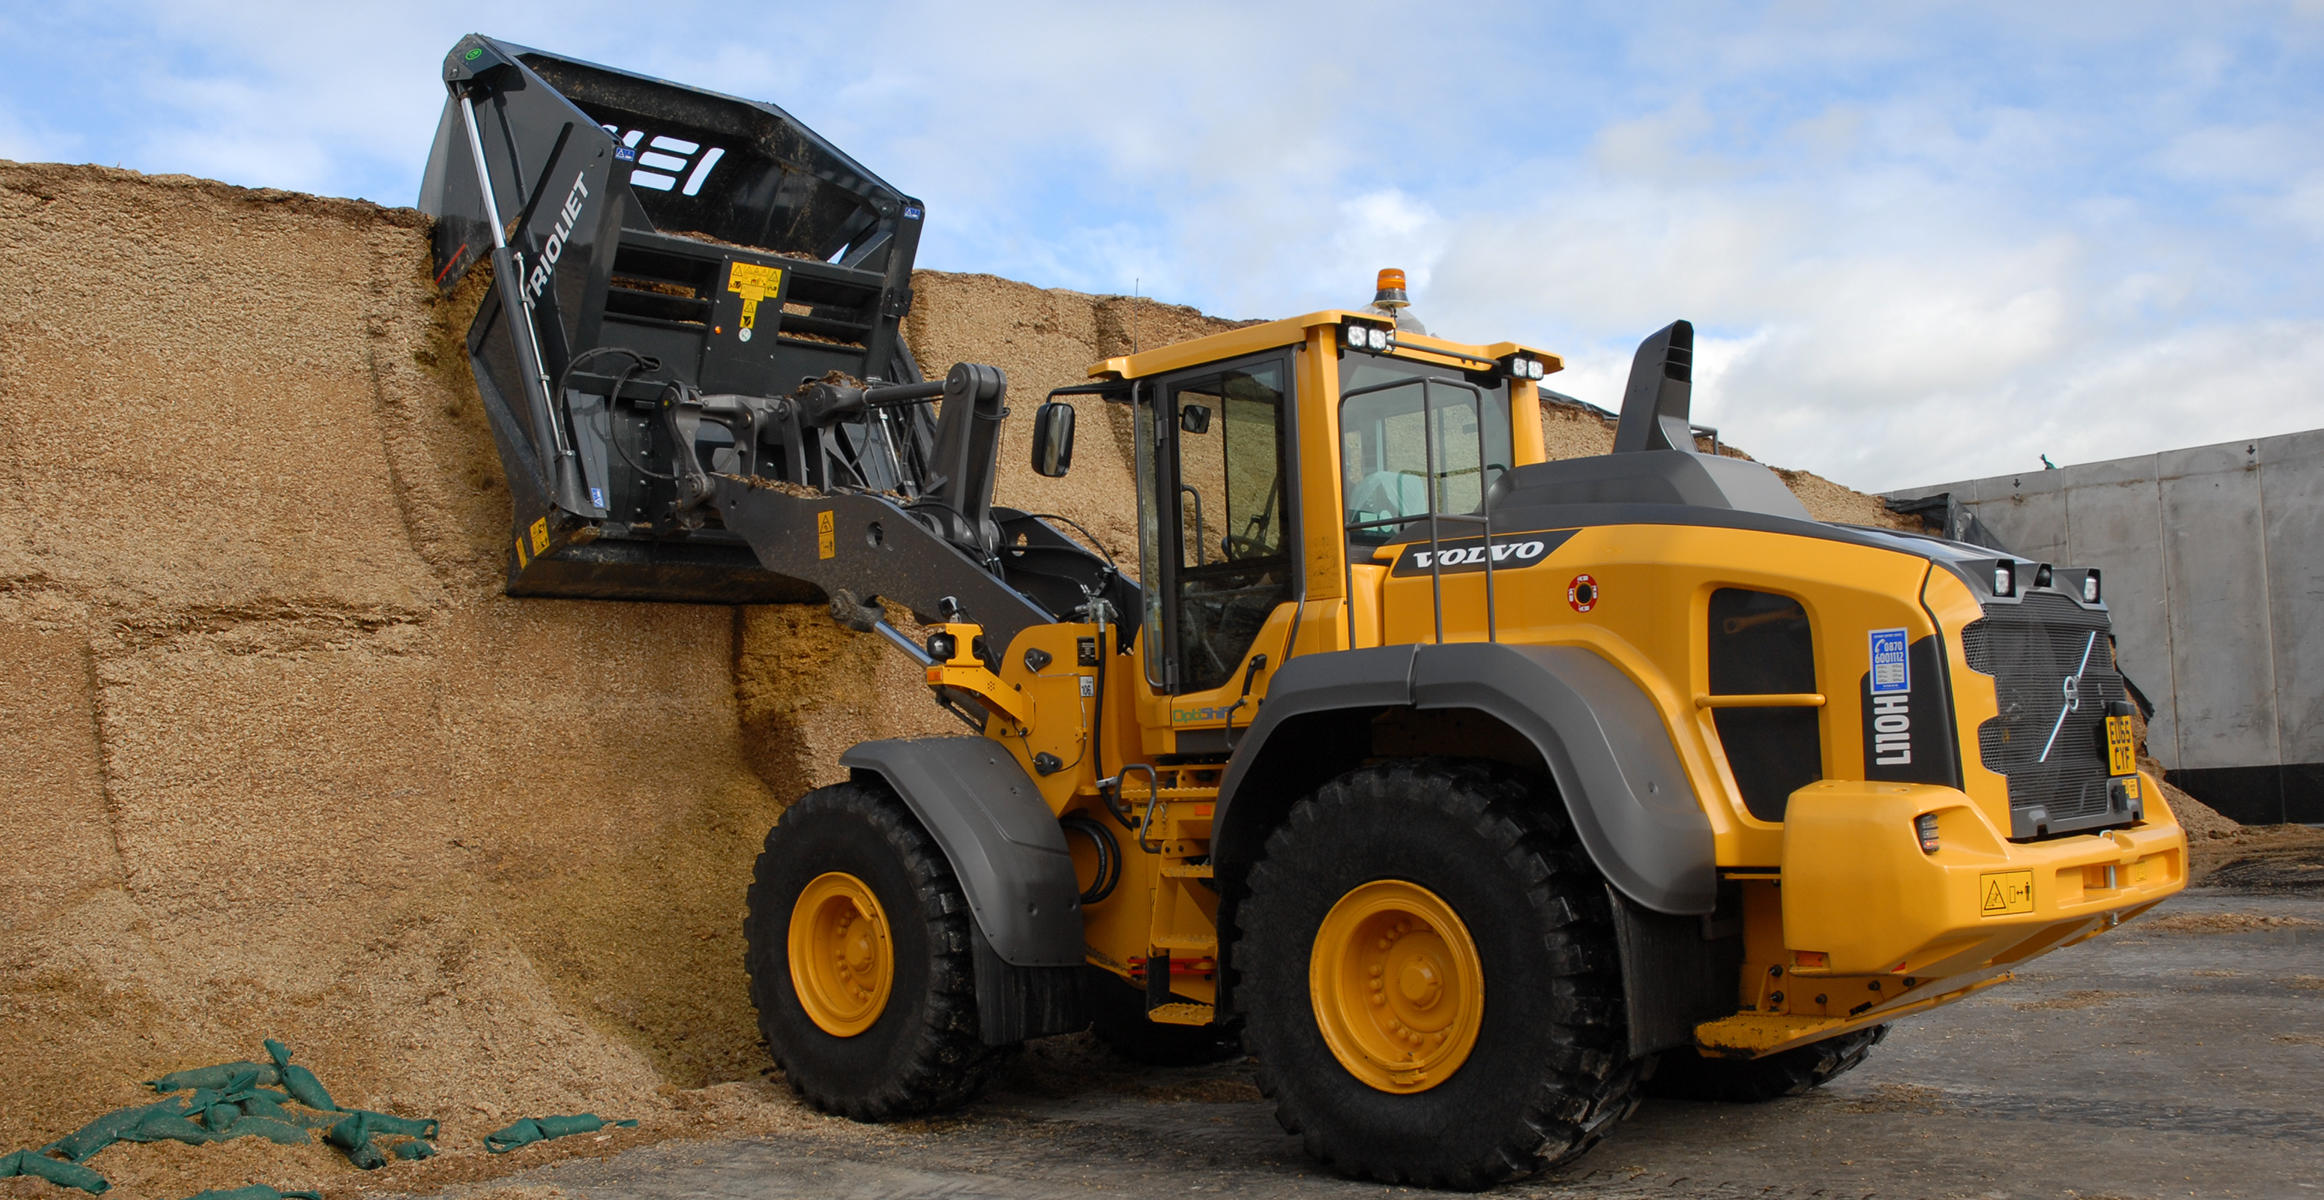 Beeswax Farming adds a new Volvo to anaerobic digester plant